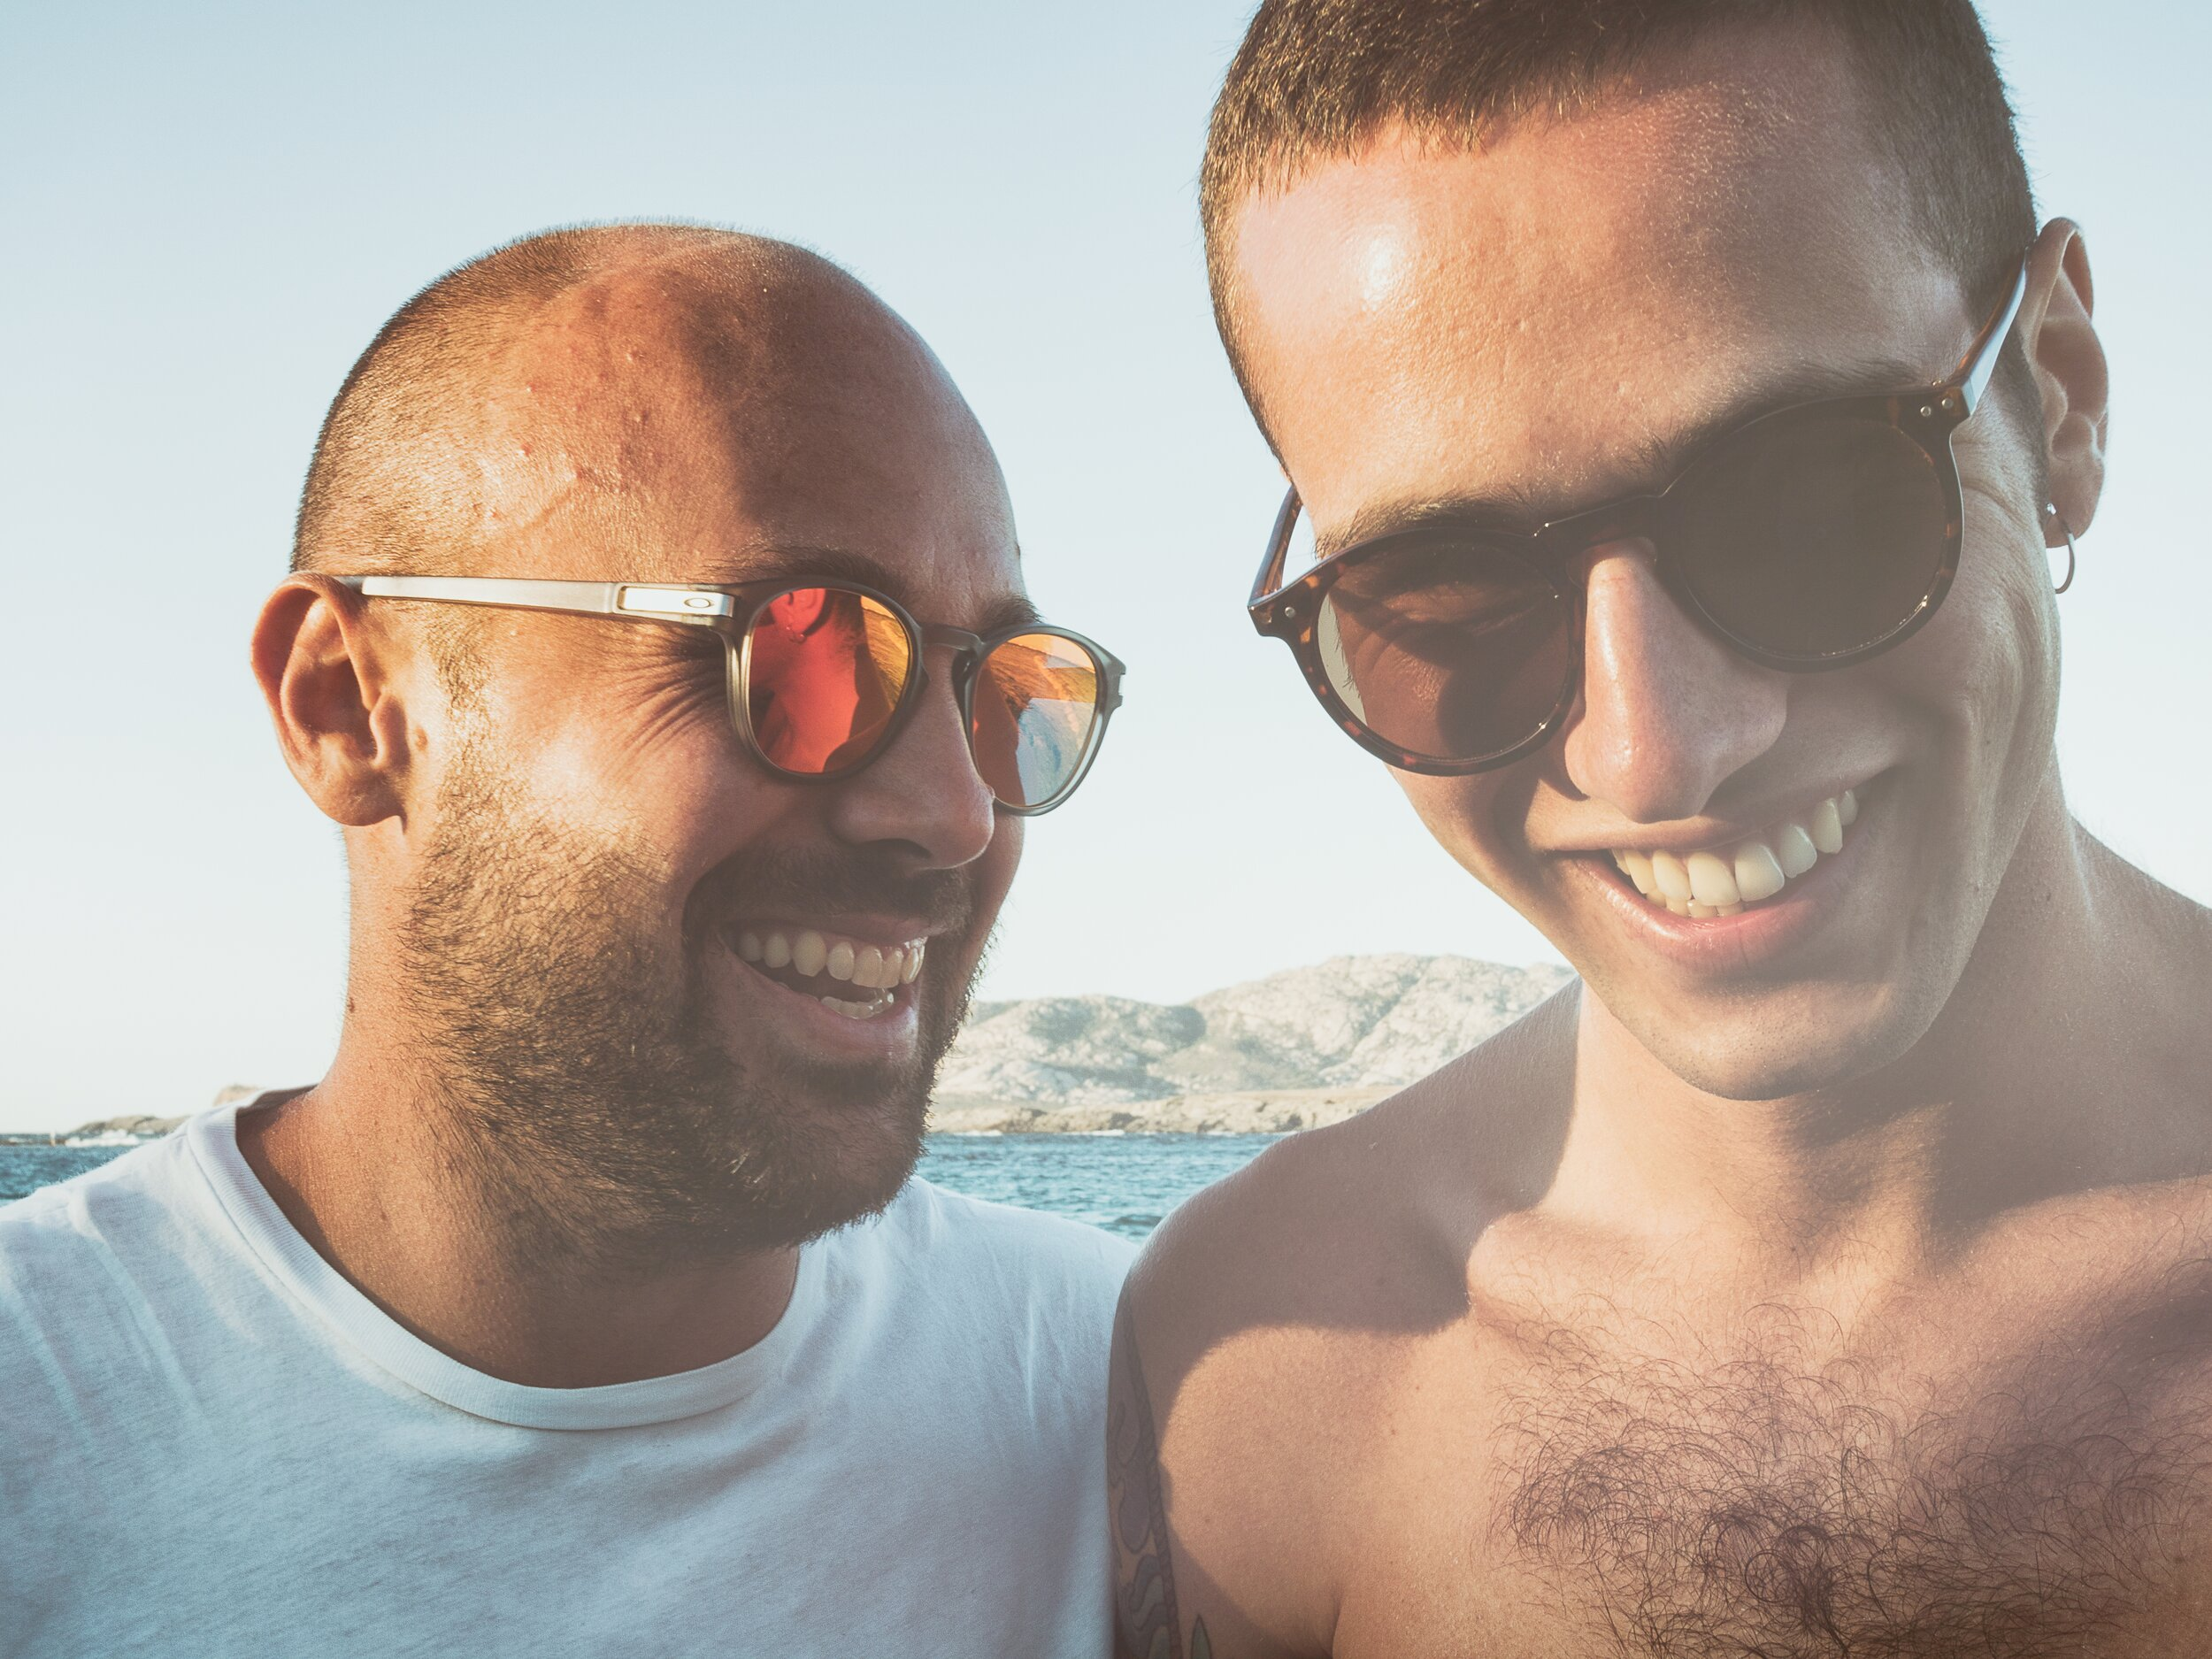 sun-people-light-adult-summer-smile-young-friends-funny-happy_t20_1blGbY.jpg